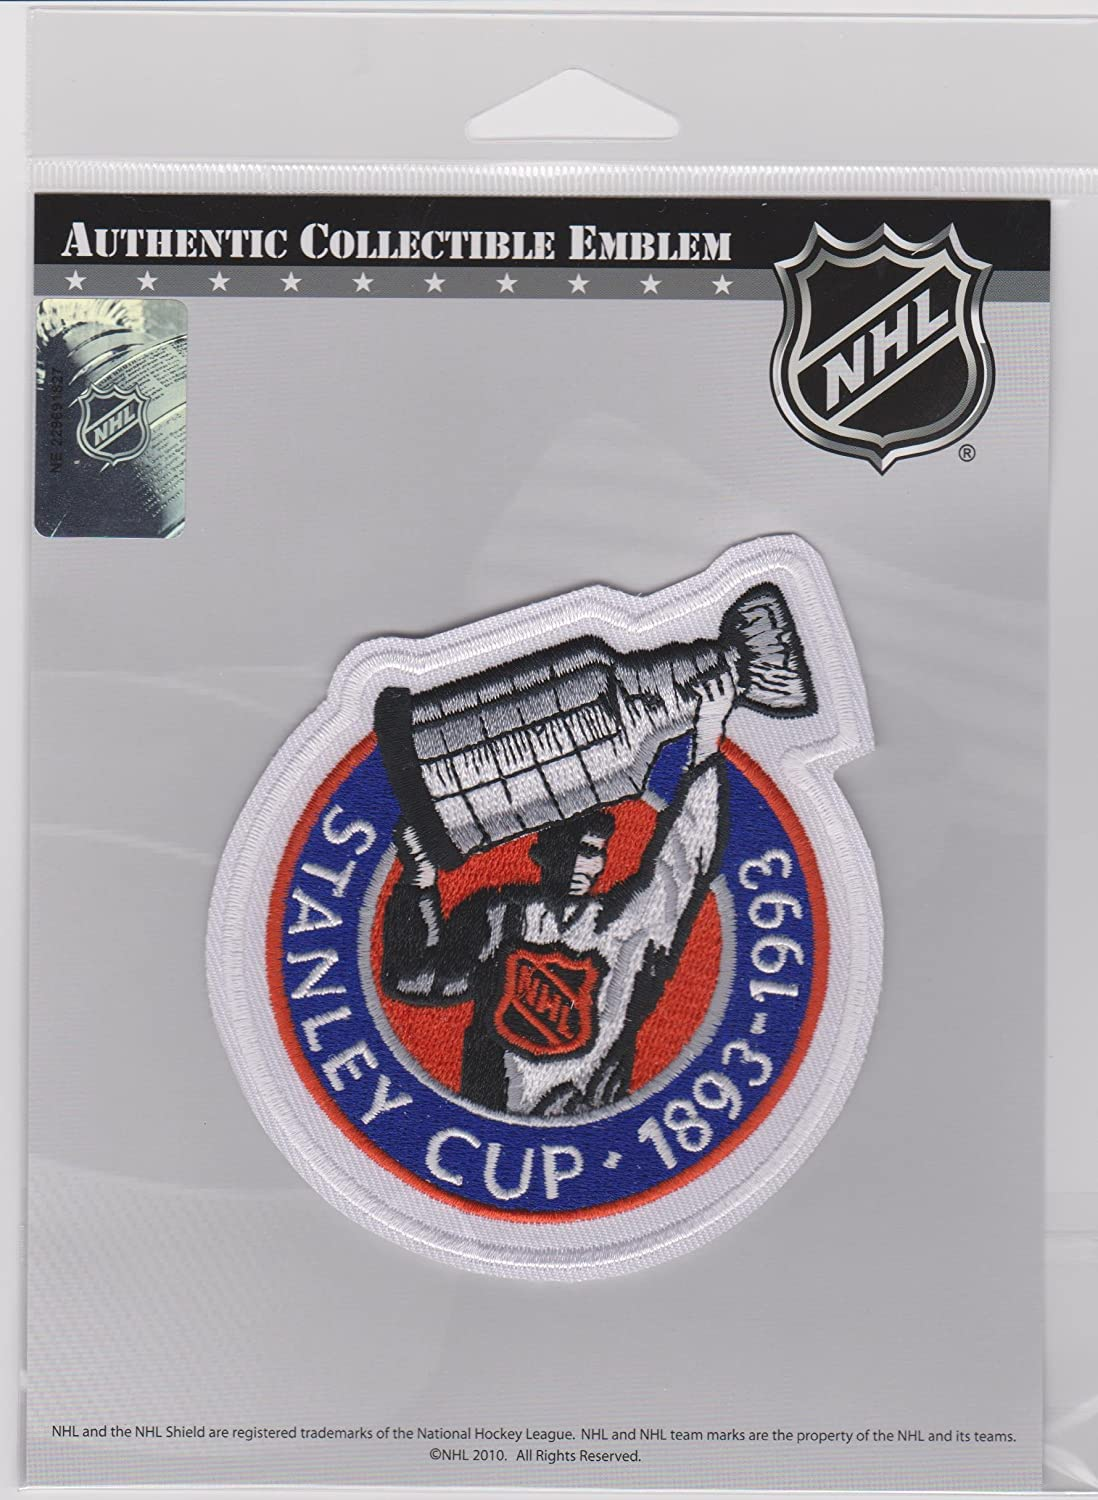 Sleeve Patches Nhl 100th Anniversary Of The Stanley Cup Trophy Patch Sports Outdoors Godthjaelp Dk